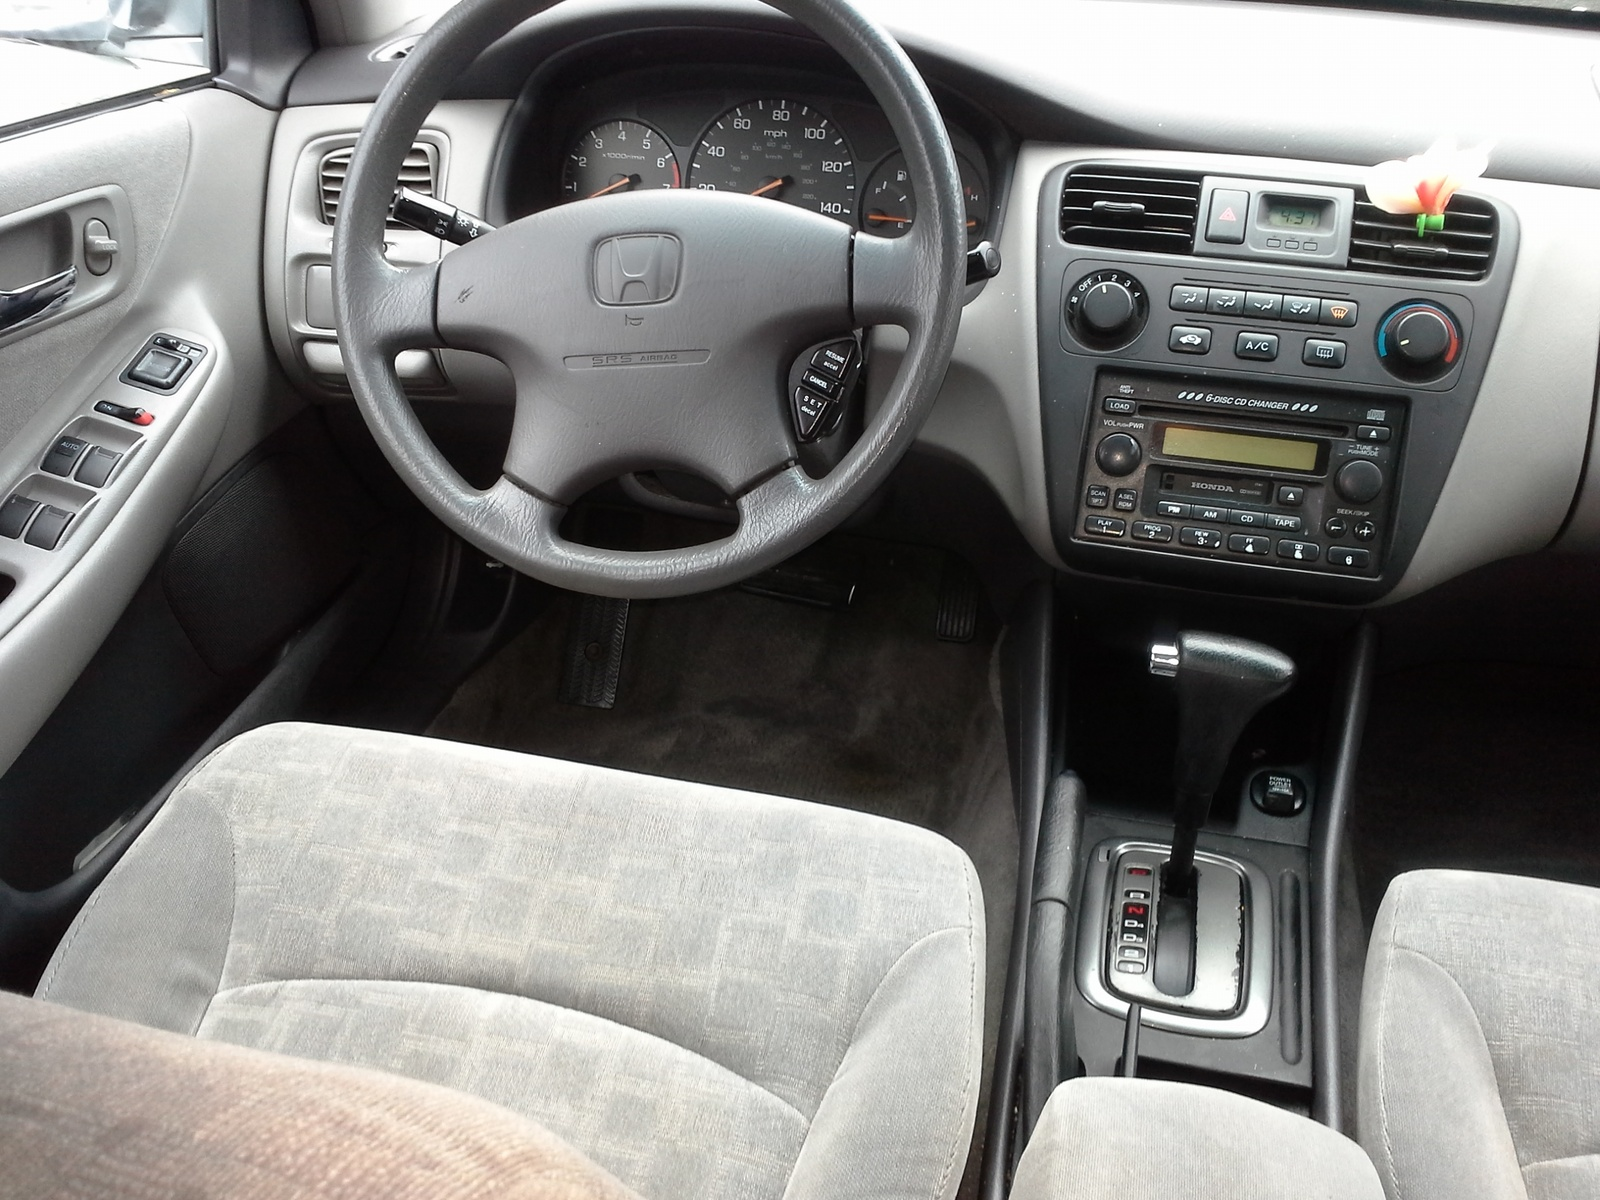 2001 honda accord interior lx cargurus